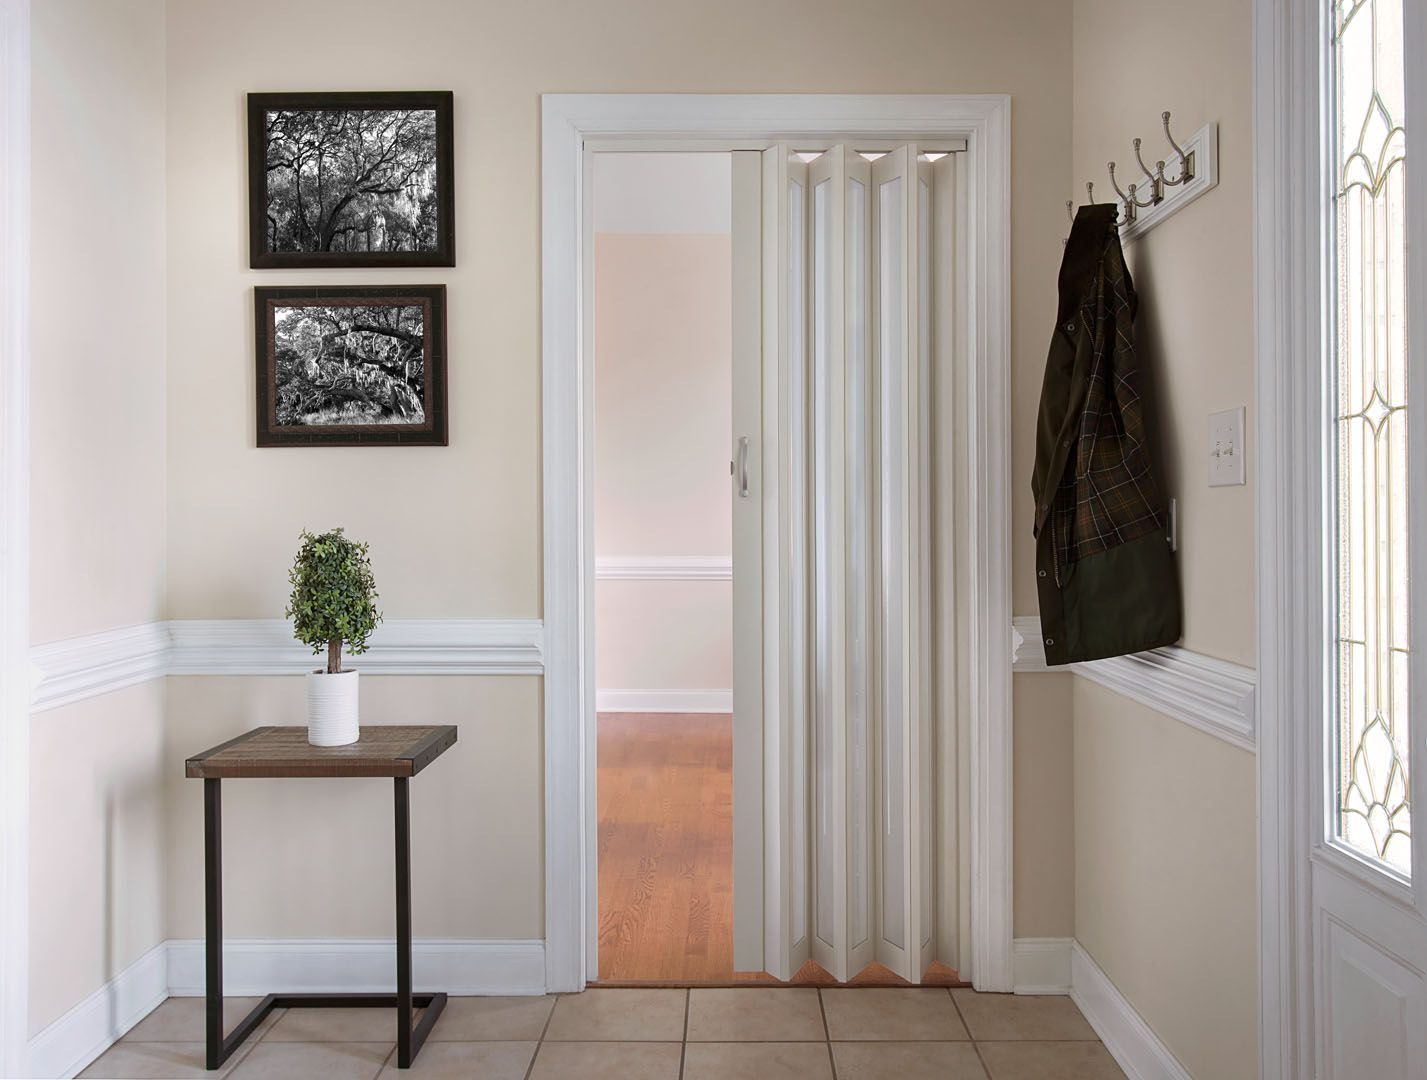 Accordion Doors Com Is The 1 Internet Supplier Of Panelfold Accordion Doors And Dividers Custom Made To Your Sp Accordion Doors Closet Doors Closet Bedroom